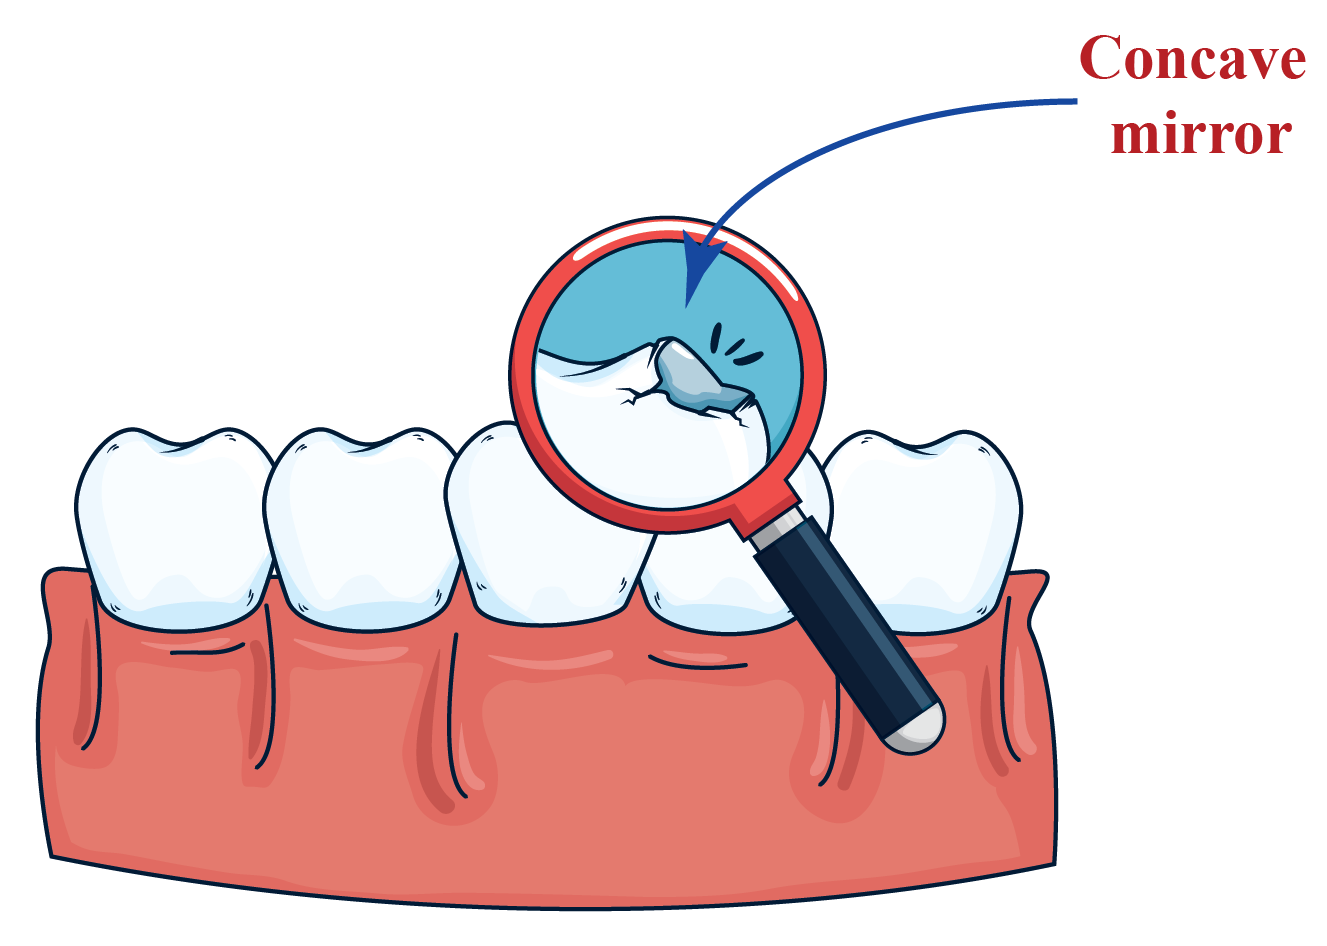 A concave mirror is used to view a larger image of the teeth.